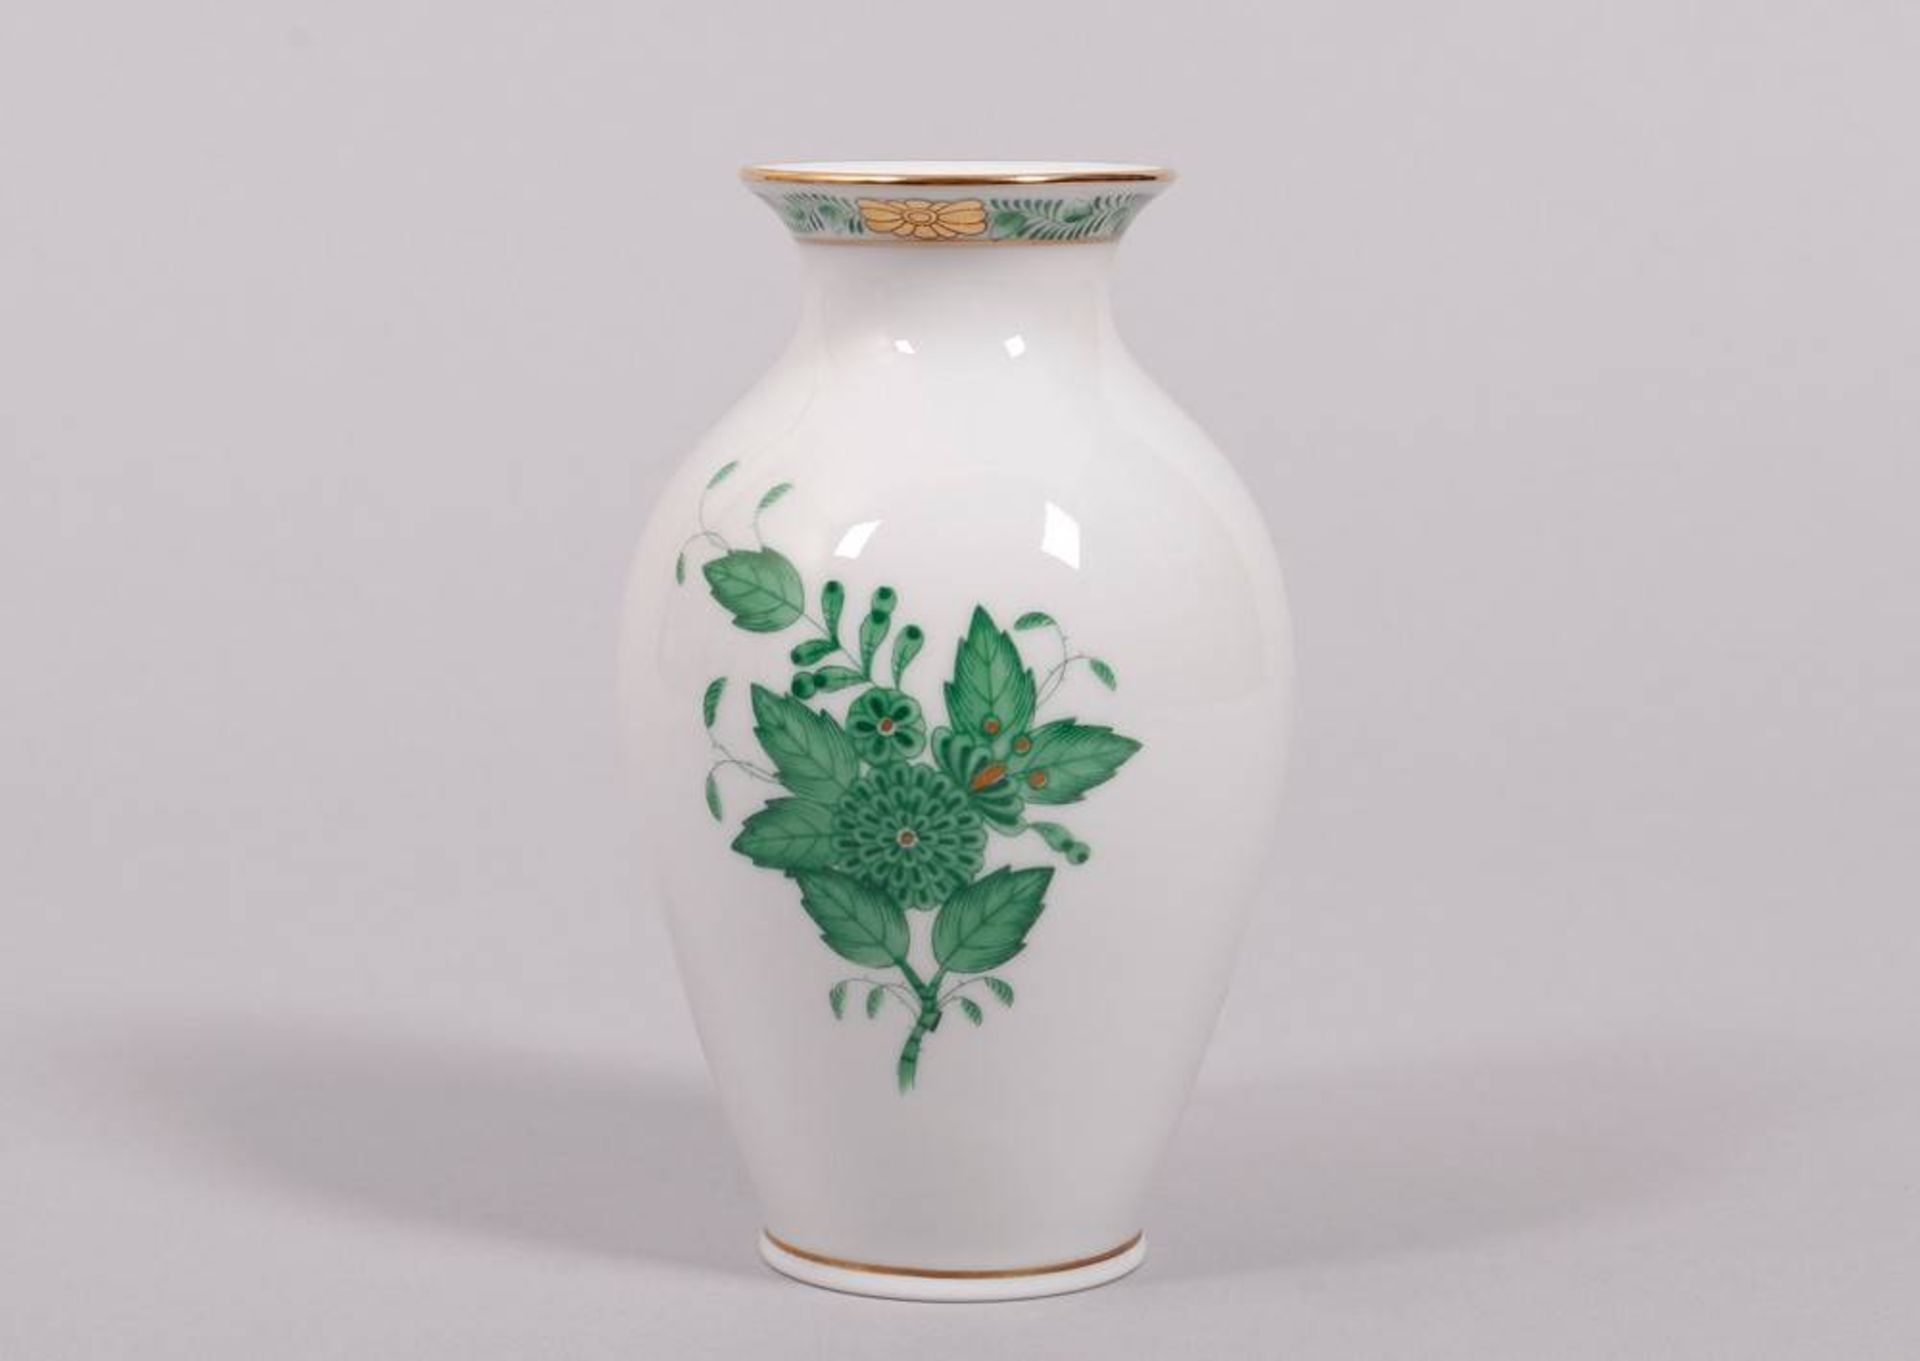 """Small vase, Herend, Hungary, 20th C., """"Apponyi green"""" decor"""